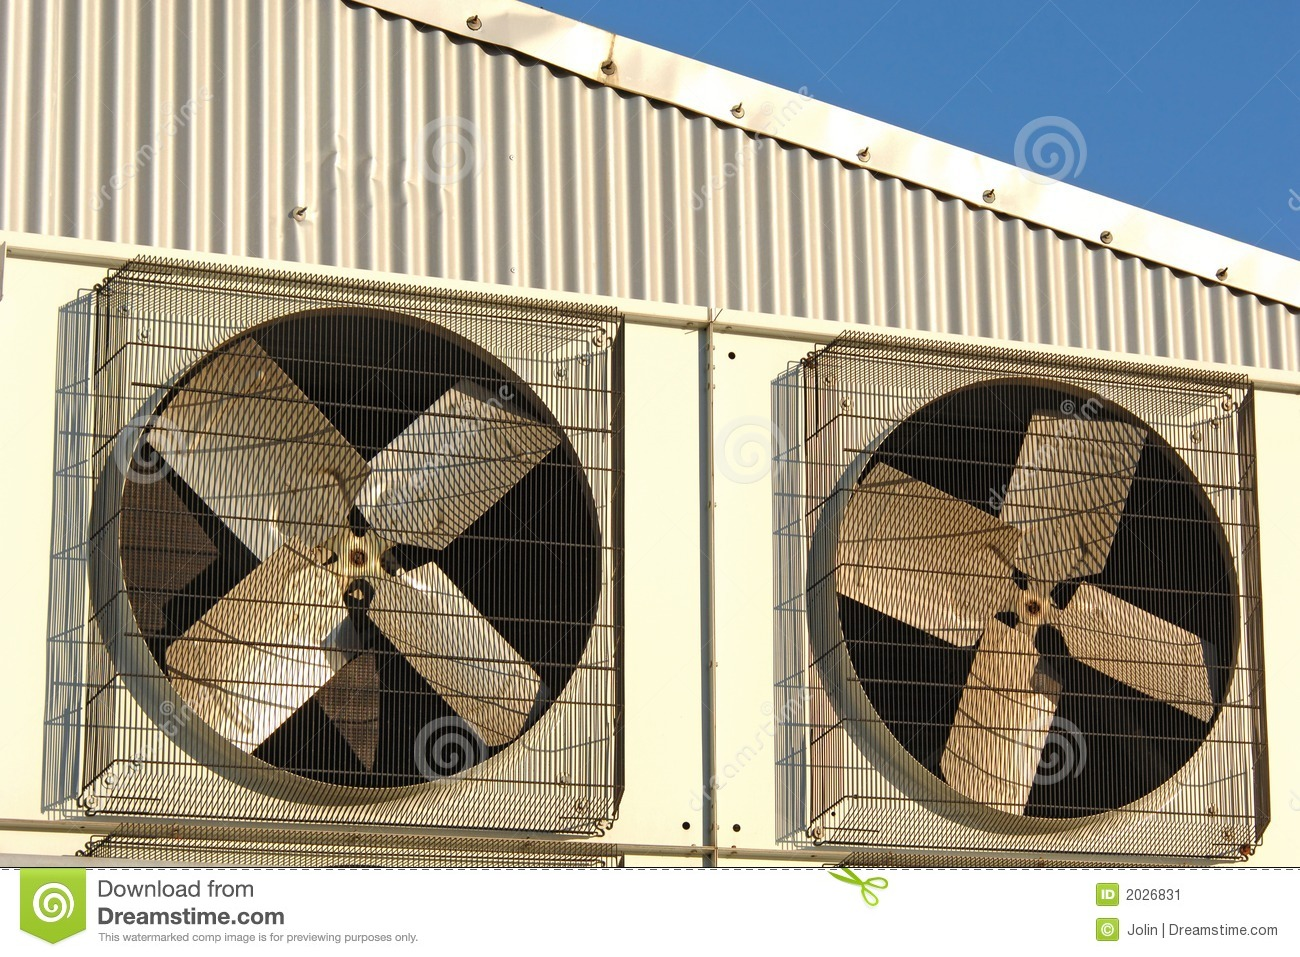 Industrial air conditioner and ventilation installation in plant. #82A229